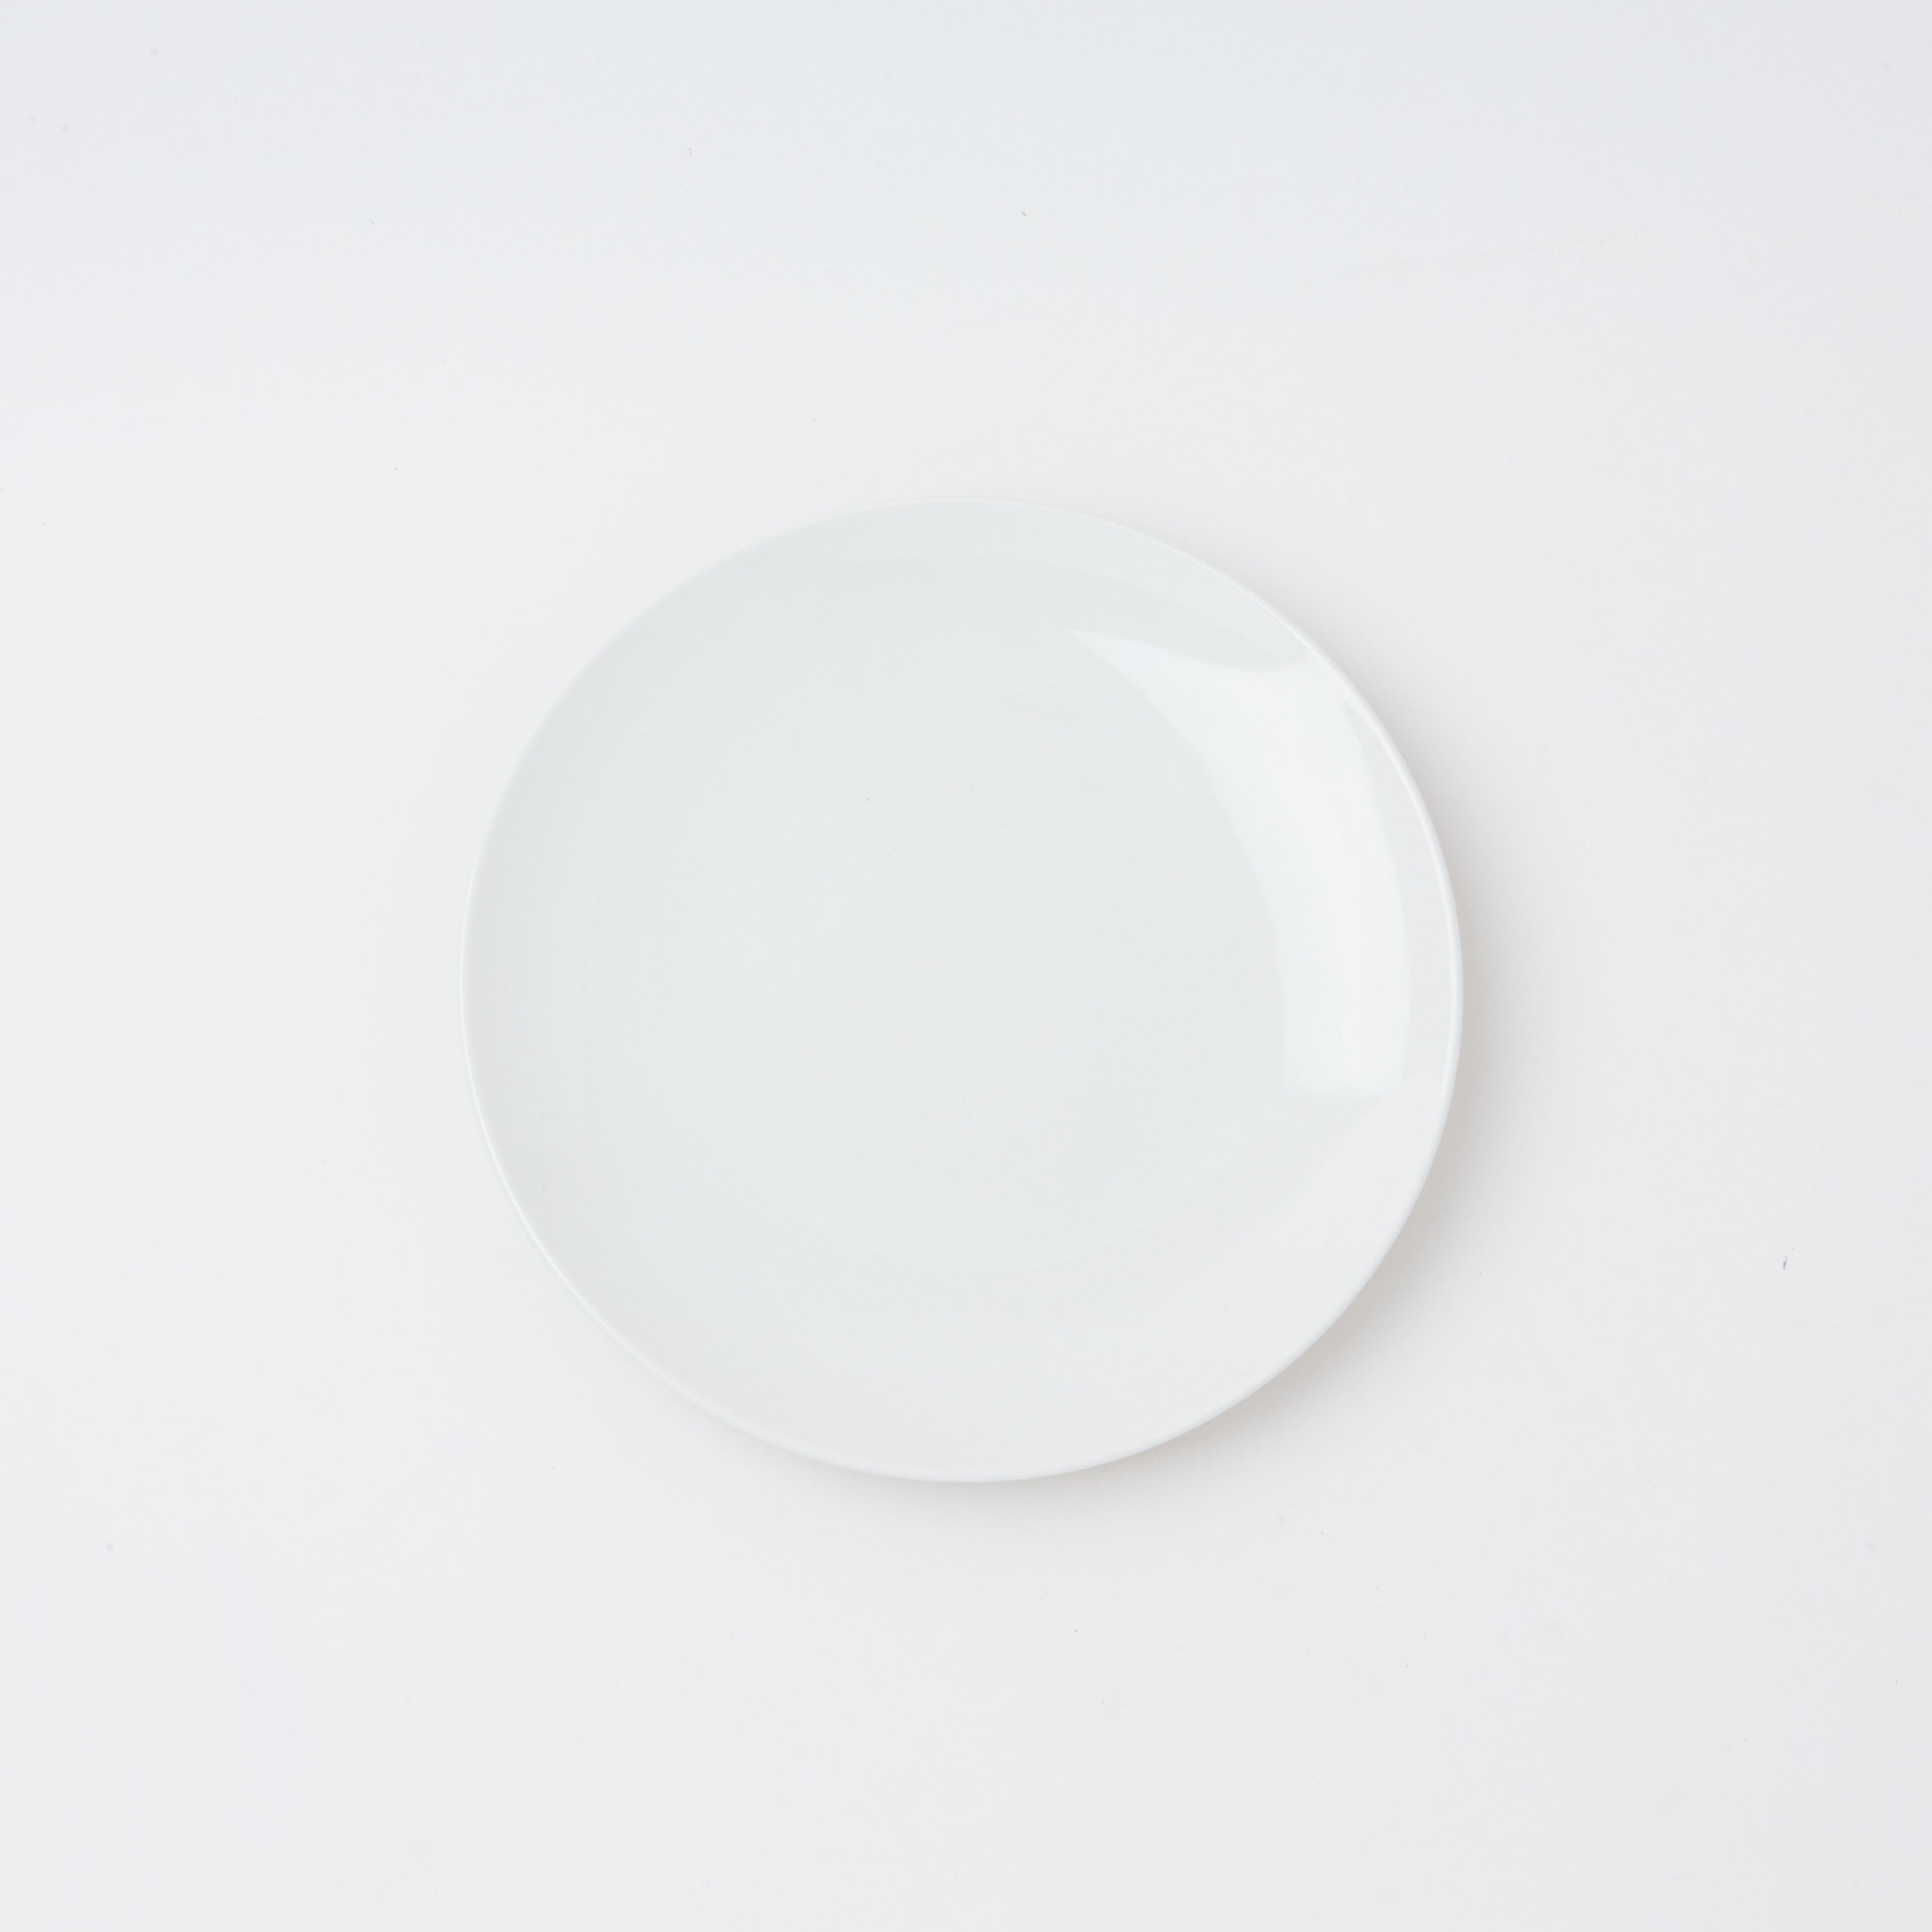 Damek White Medium Plate (Single Replacement)